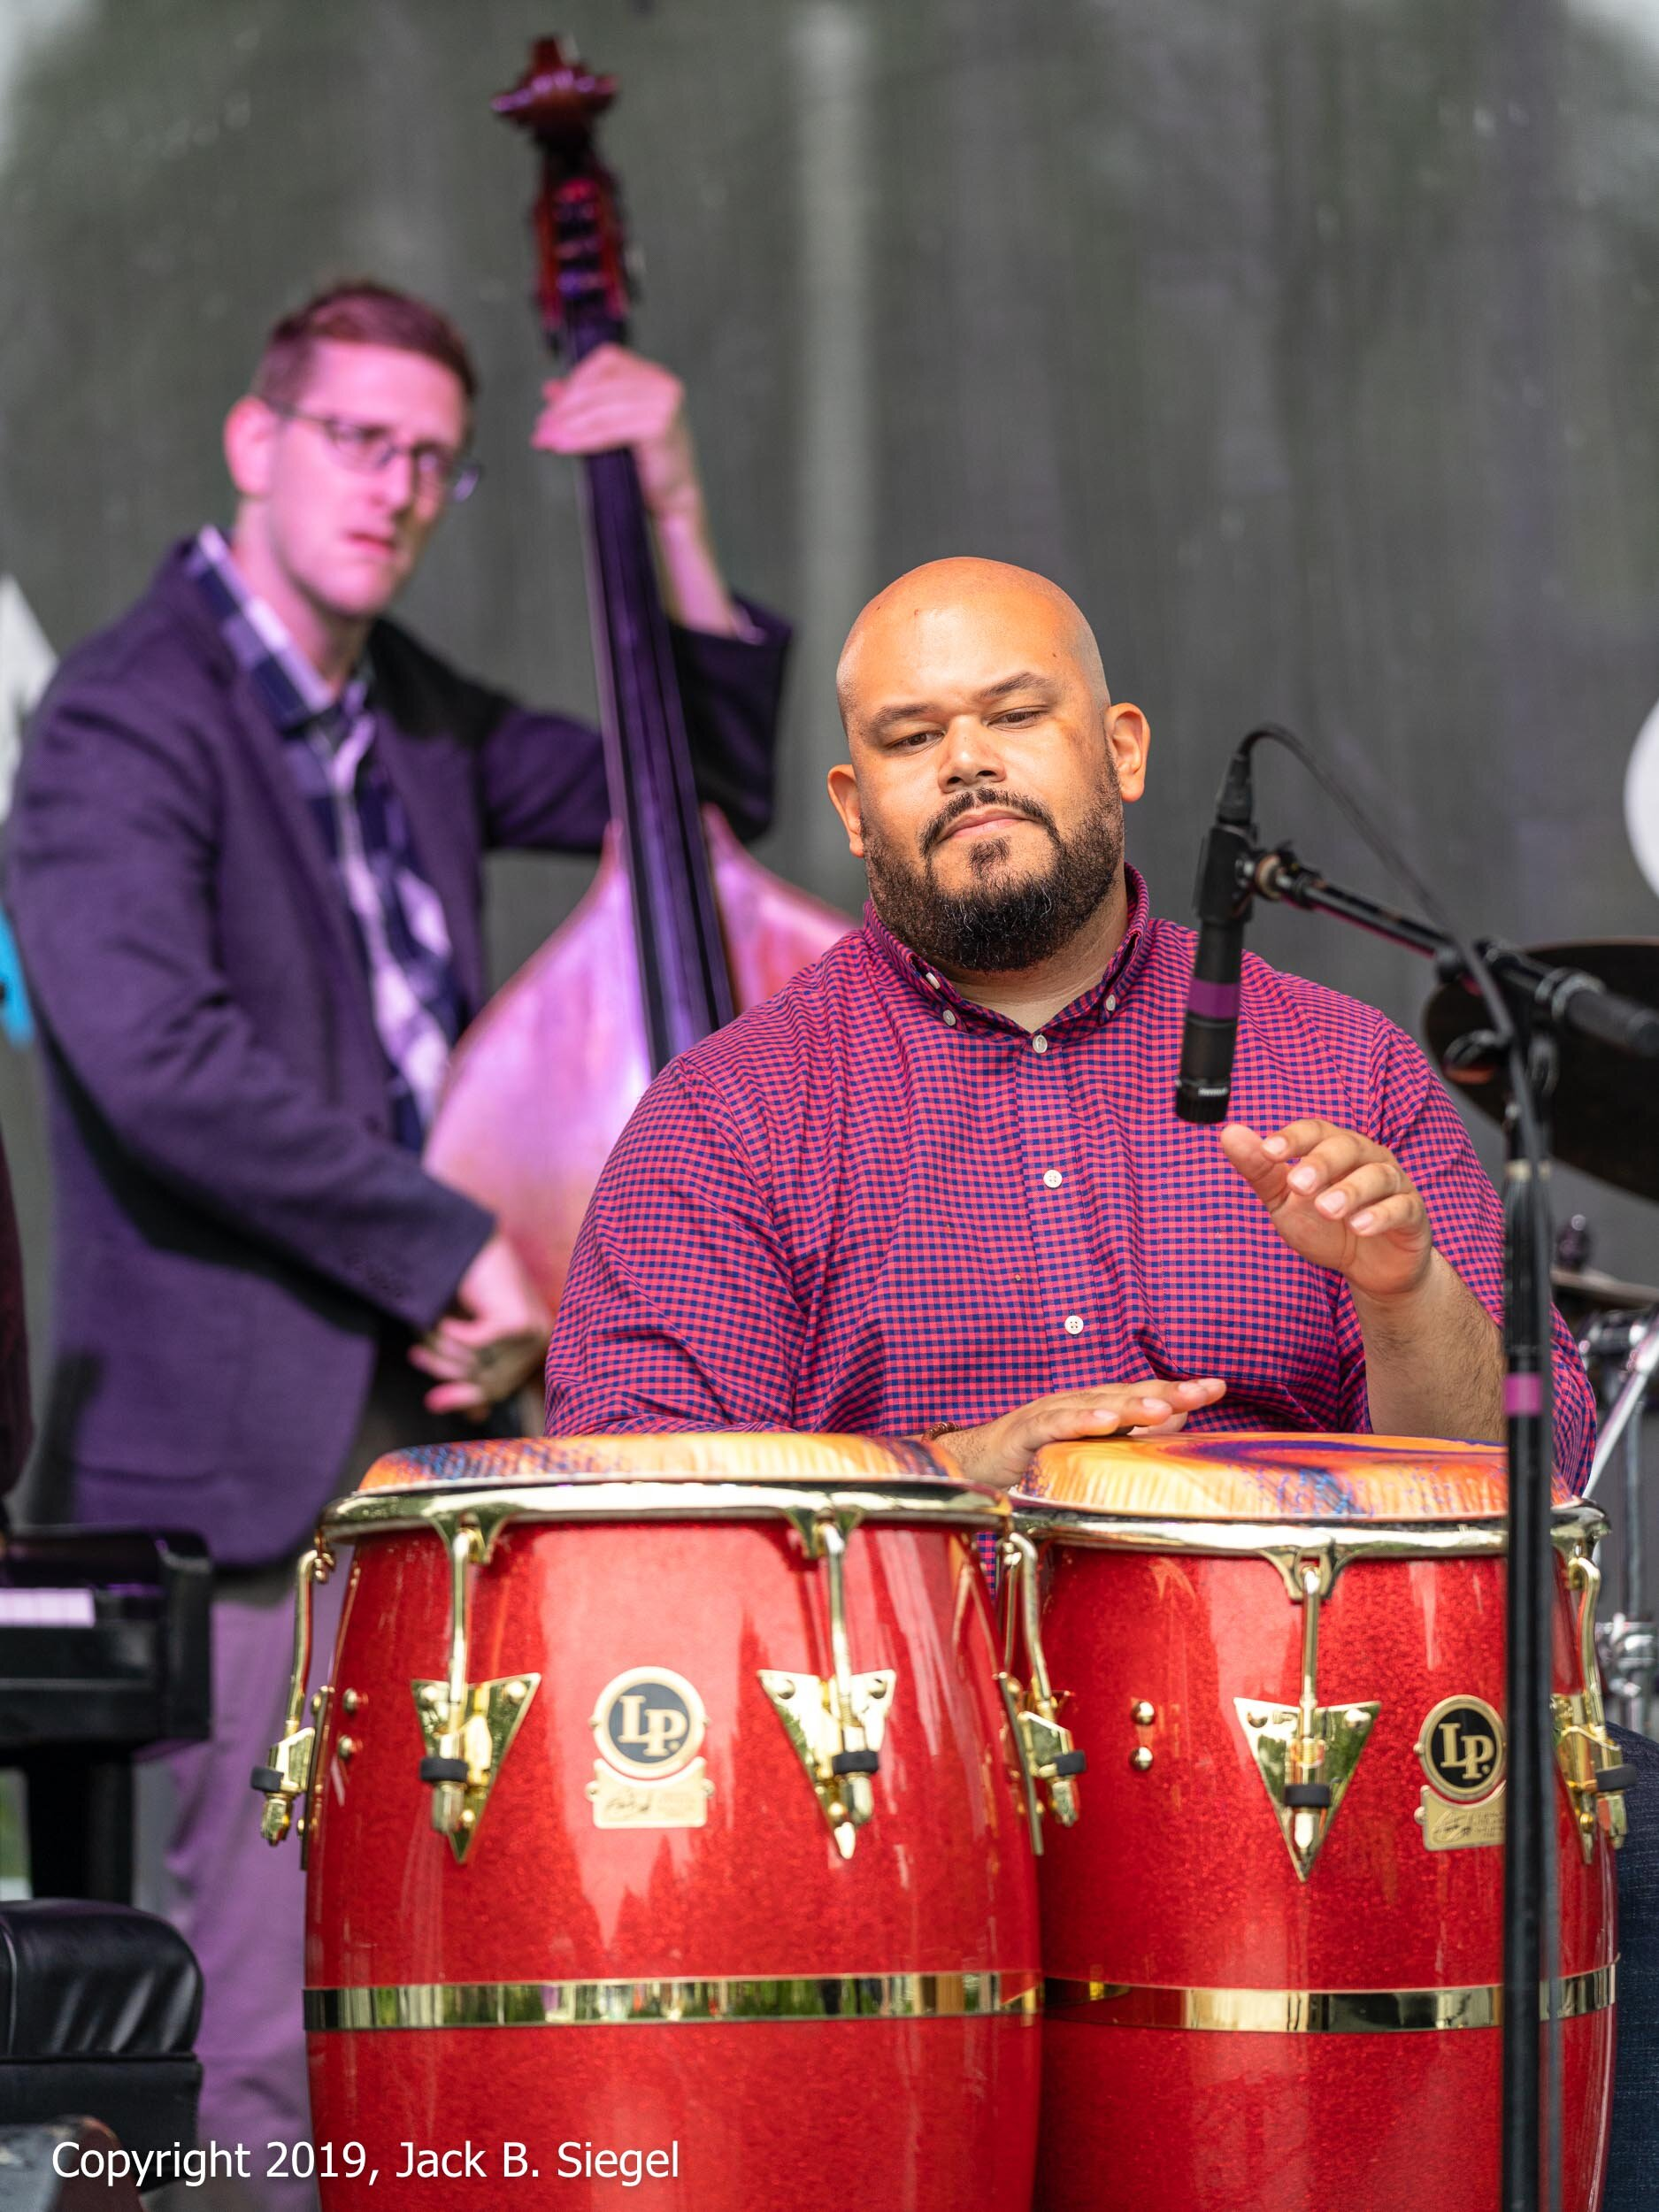 Unidentified Conga Player with Juan Pastor